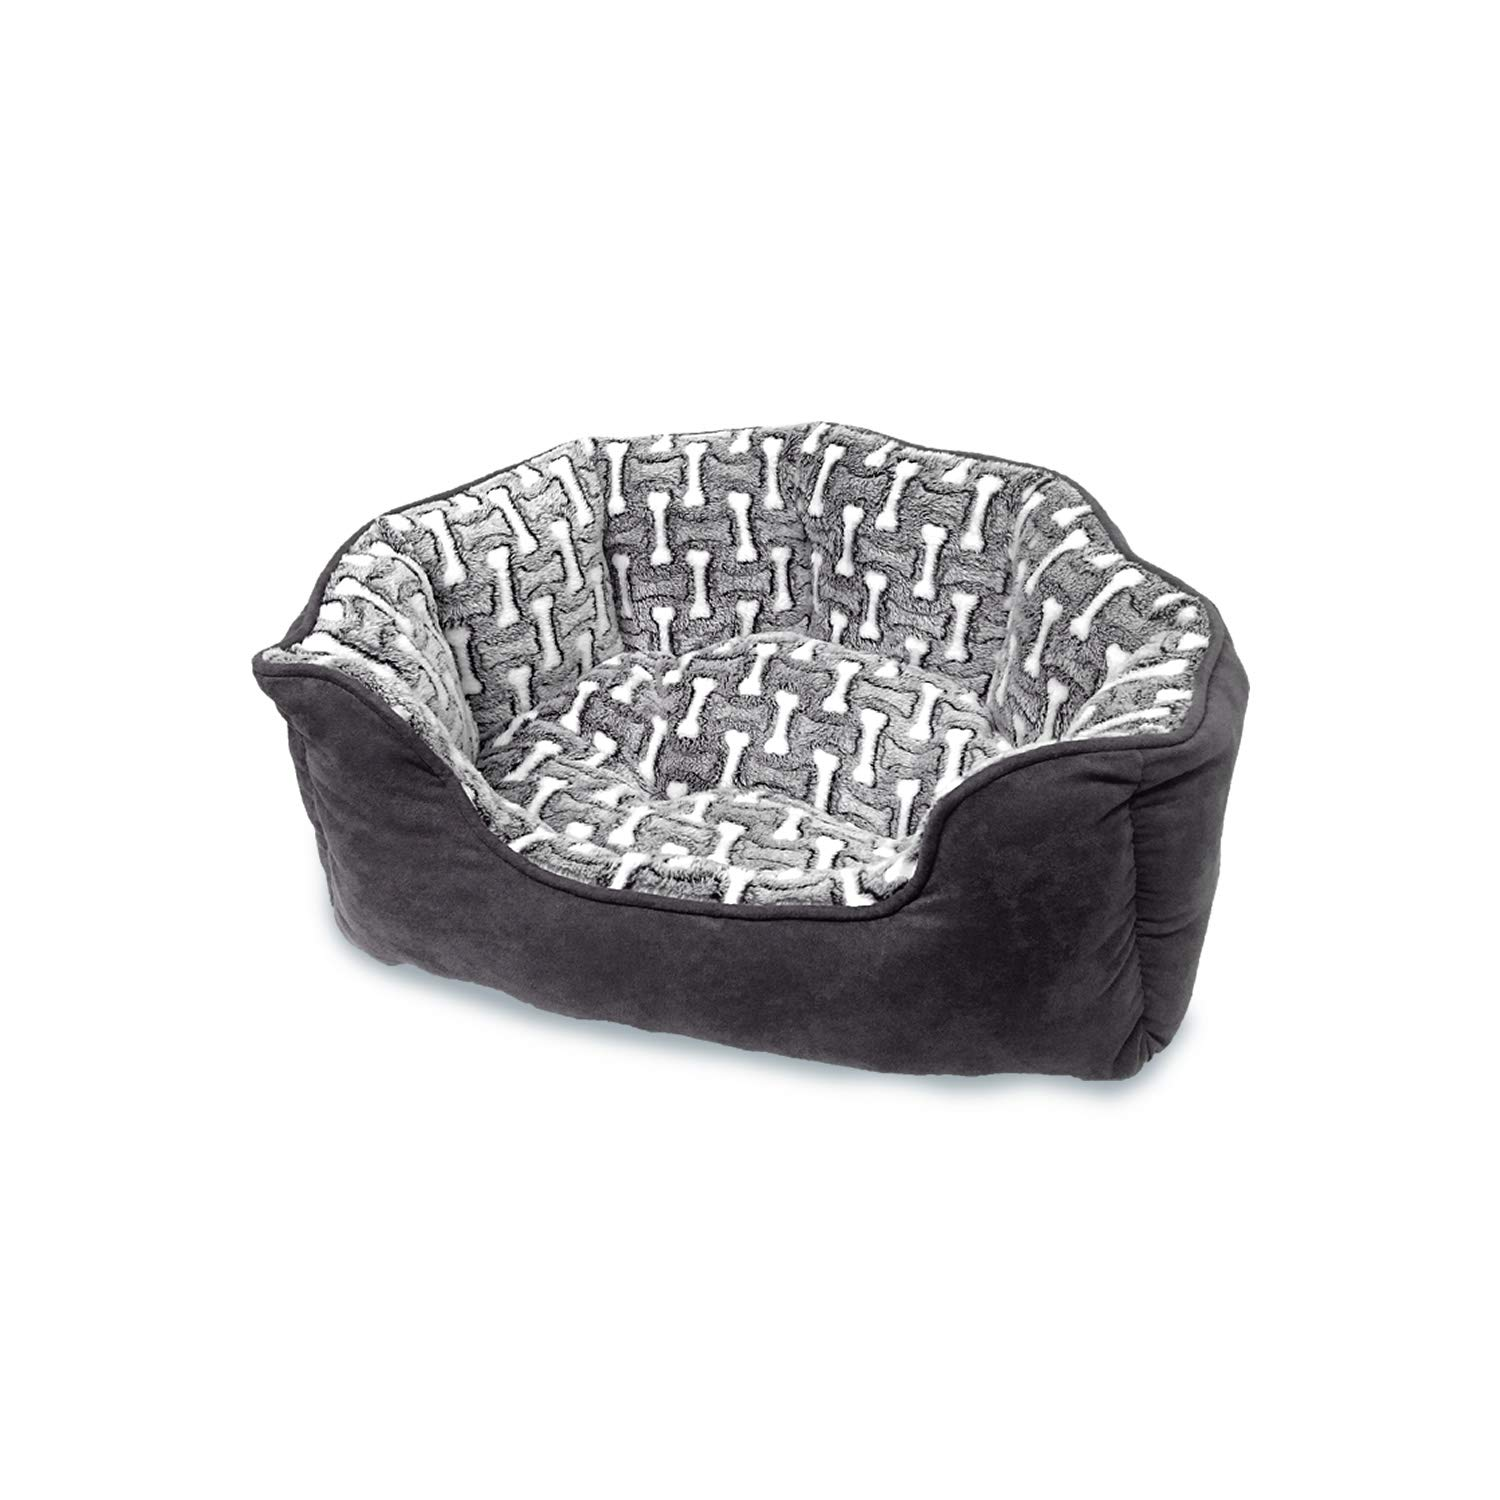 Ethical Pets 31032 Sleepzone Scallop Bones  Step in Dog Bed, 24 , Midnight